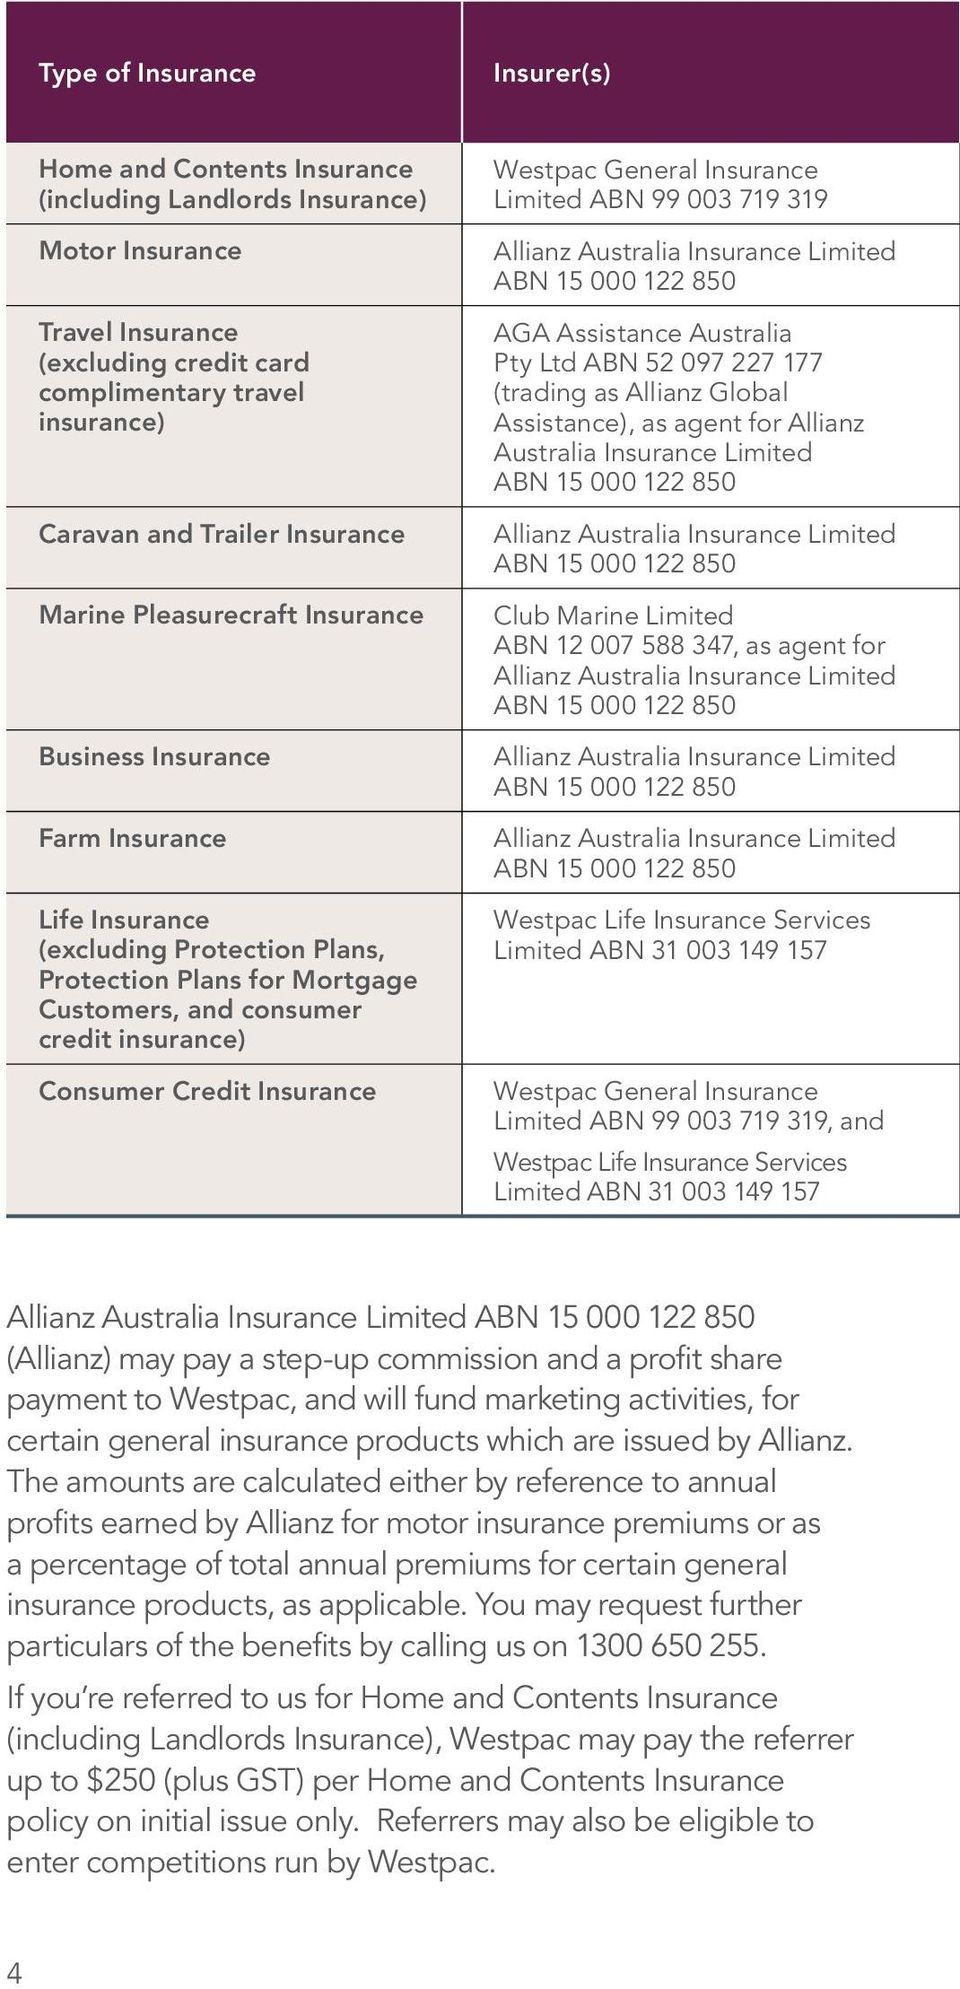 Credit Insurance Westpac General Insurance Limited ABN 99 003 719 319 Allianz Australia Insurance Limited ABN 15 000 122 850 AGA Assistance Australia Pty Ltd ABN 52 097 227 177 (trading as Allianz